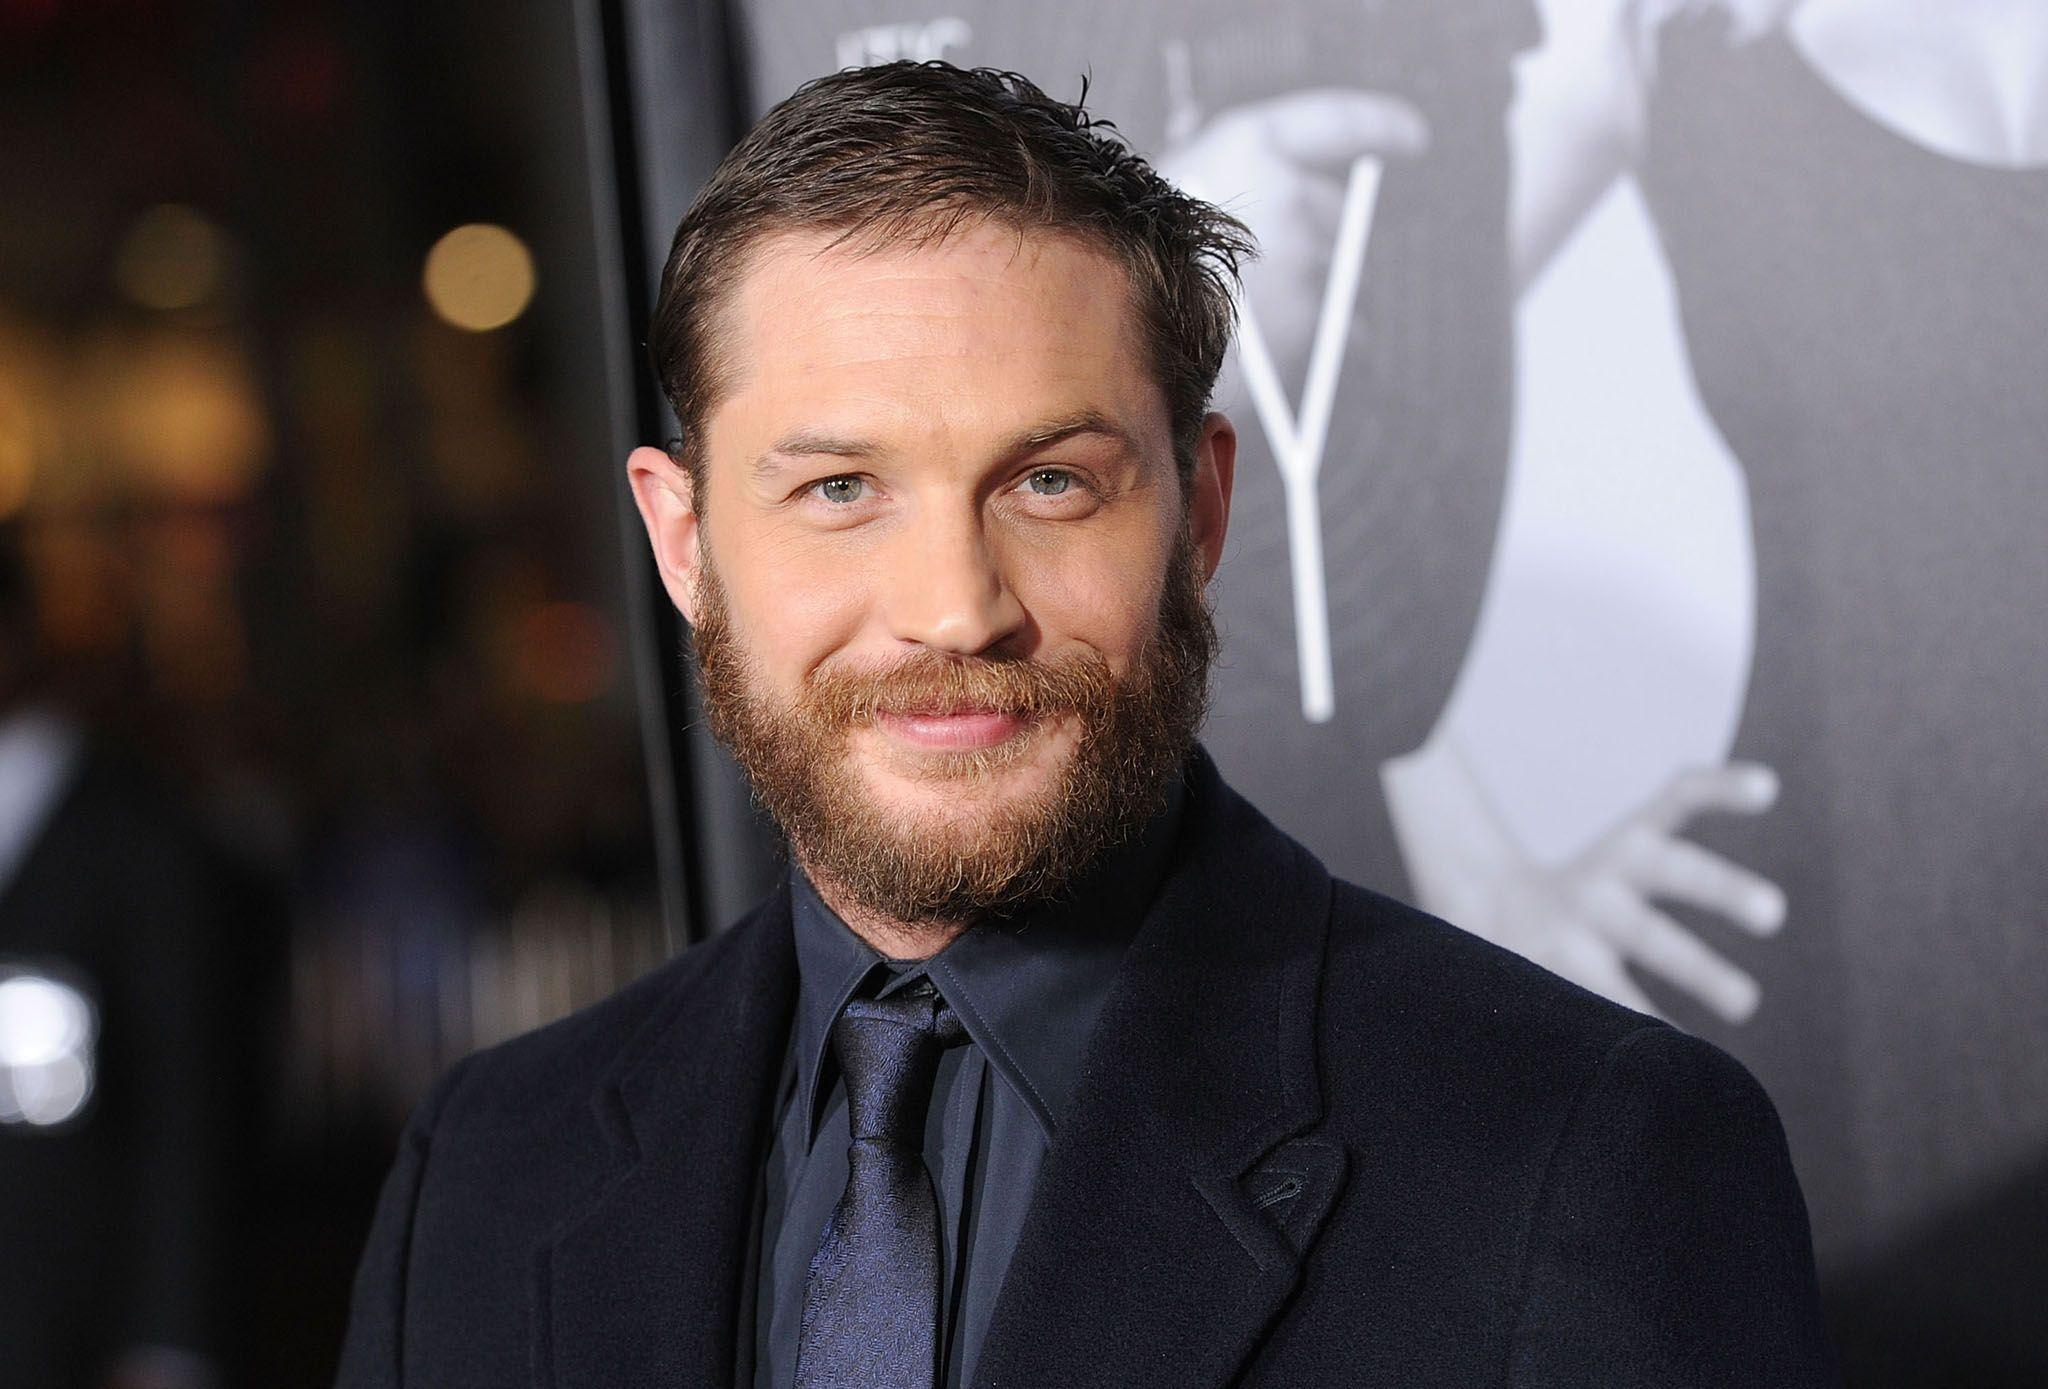 Tom Hardy HD Desktop Wallpapers | 7wallpapers.net